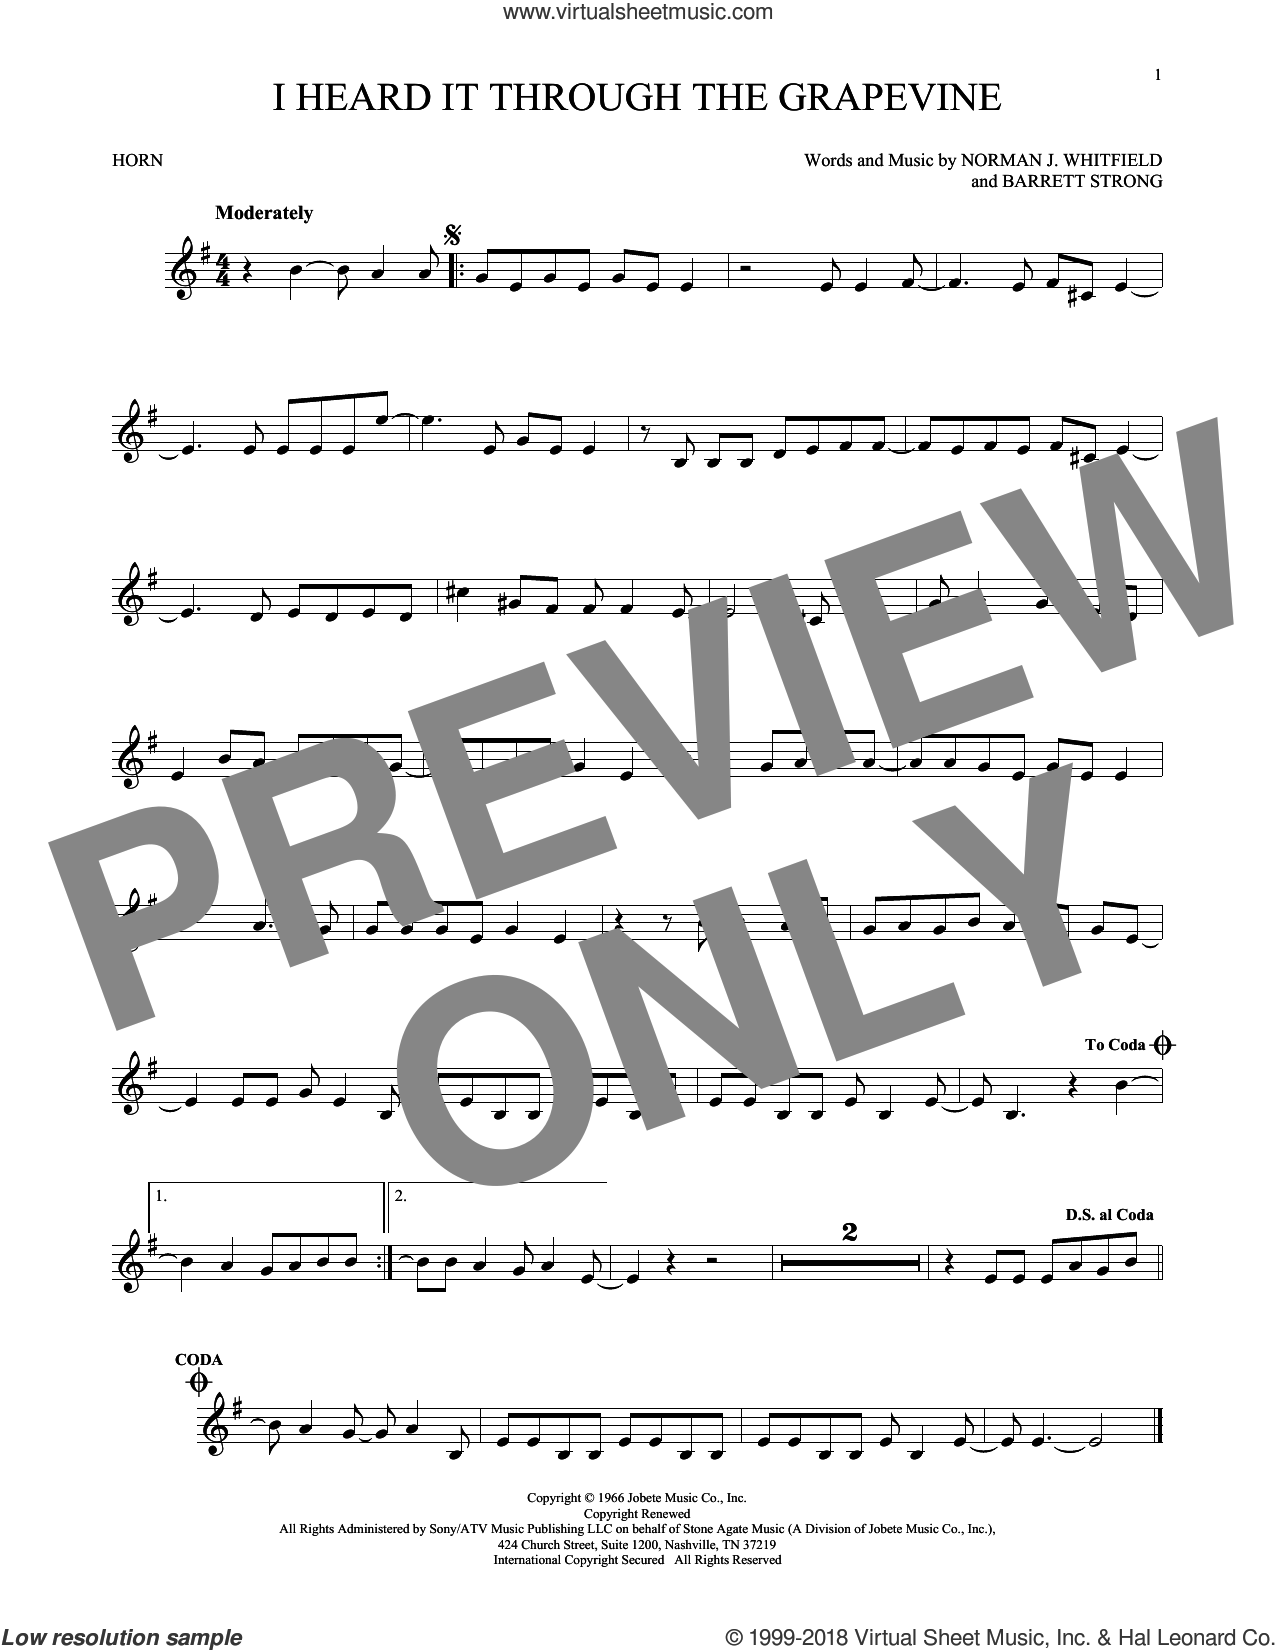 I Heard It Through The Grapevine sheet music for horn solo by Norman Whitfield